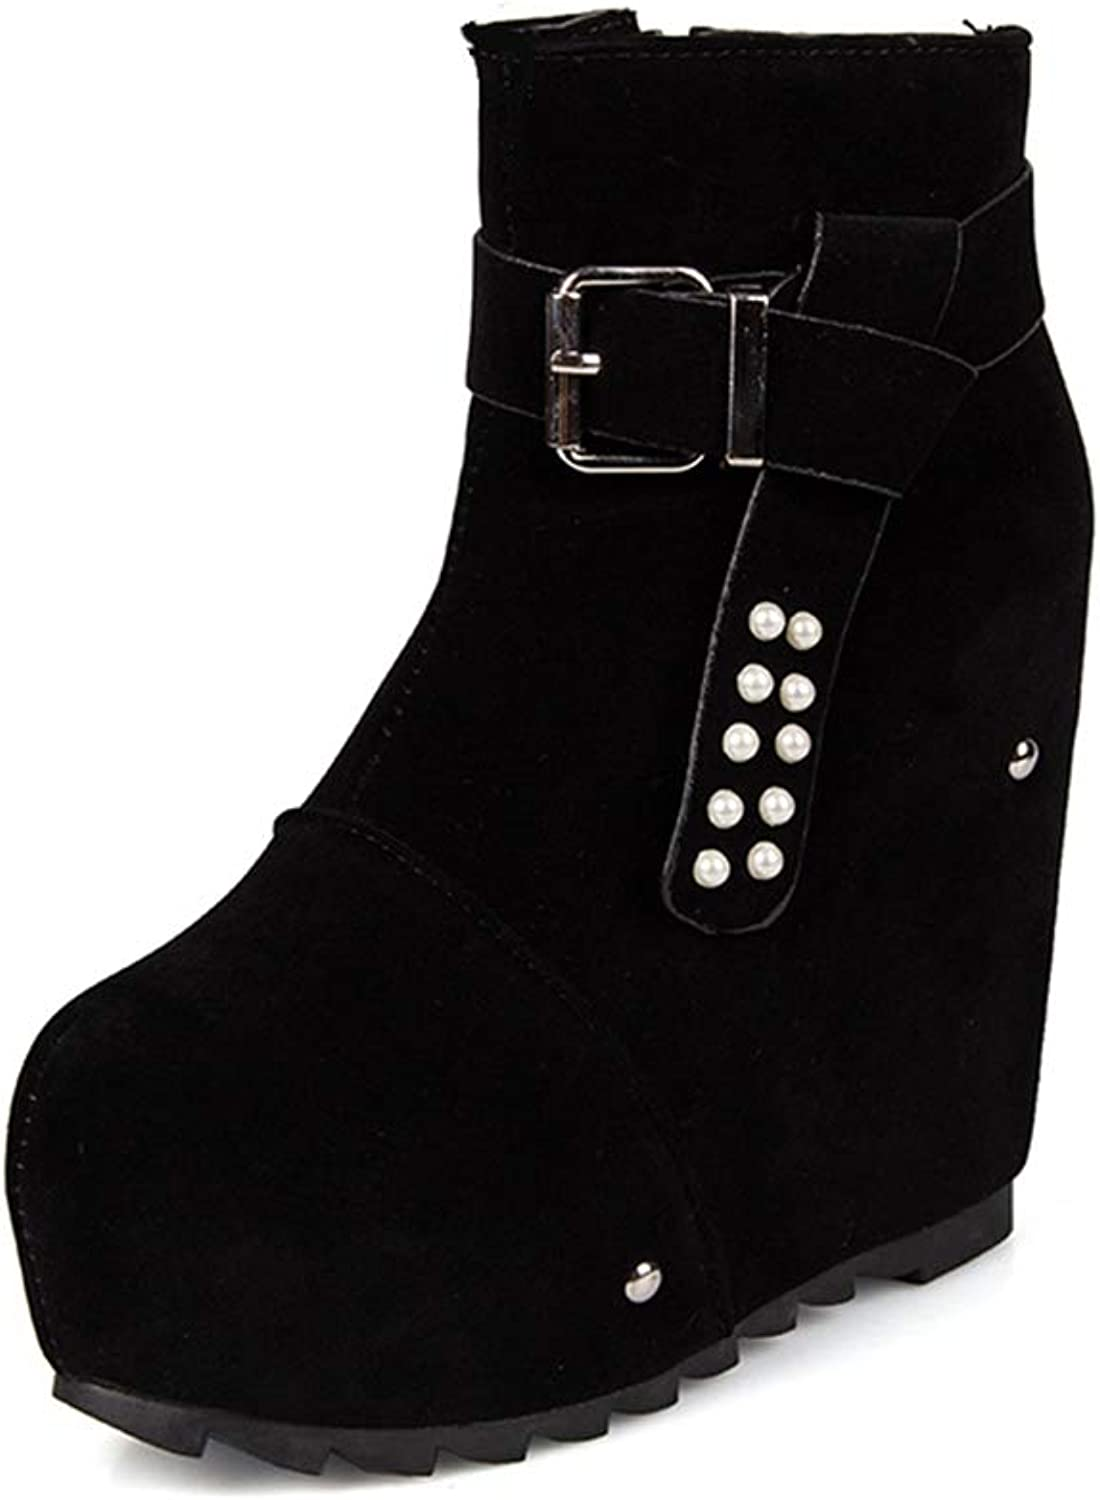 Women's Ankle Boots Wedges Hidden Height Increased Female Platform Boot Zipper Sexy Ladies Boot